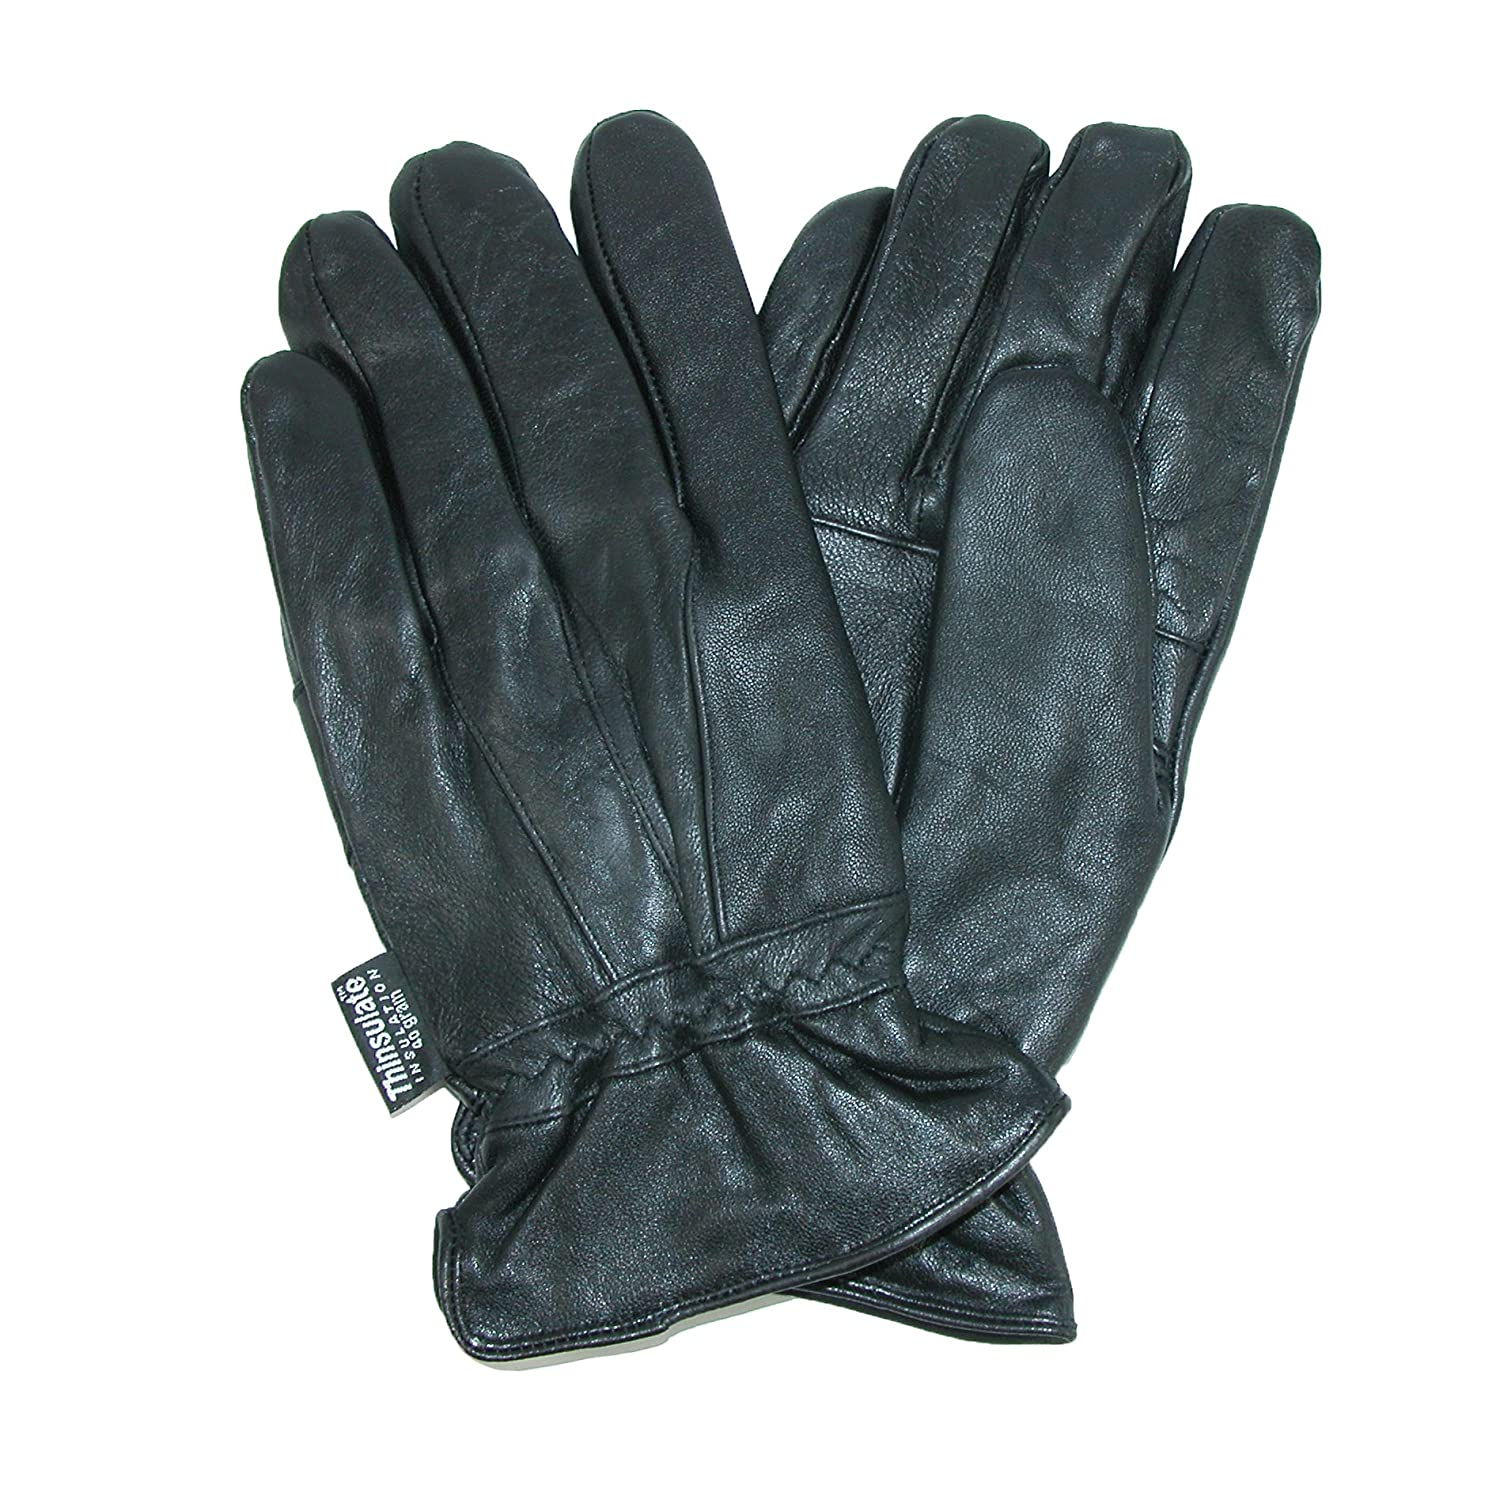 Handmade leather driving gloves - Dorfman Pacific Mens Leather Thinsulate Lined Water Repellent Winter Gloves Small Medium At Amazon Men S Clothing Store Cold Weather Gloves